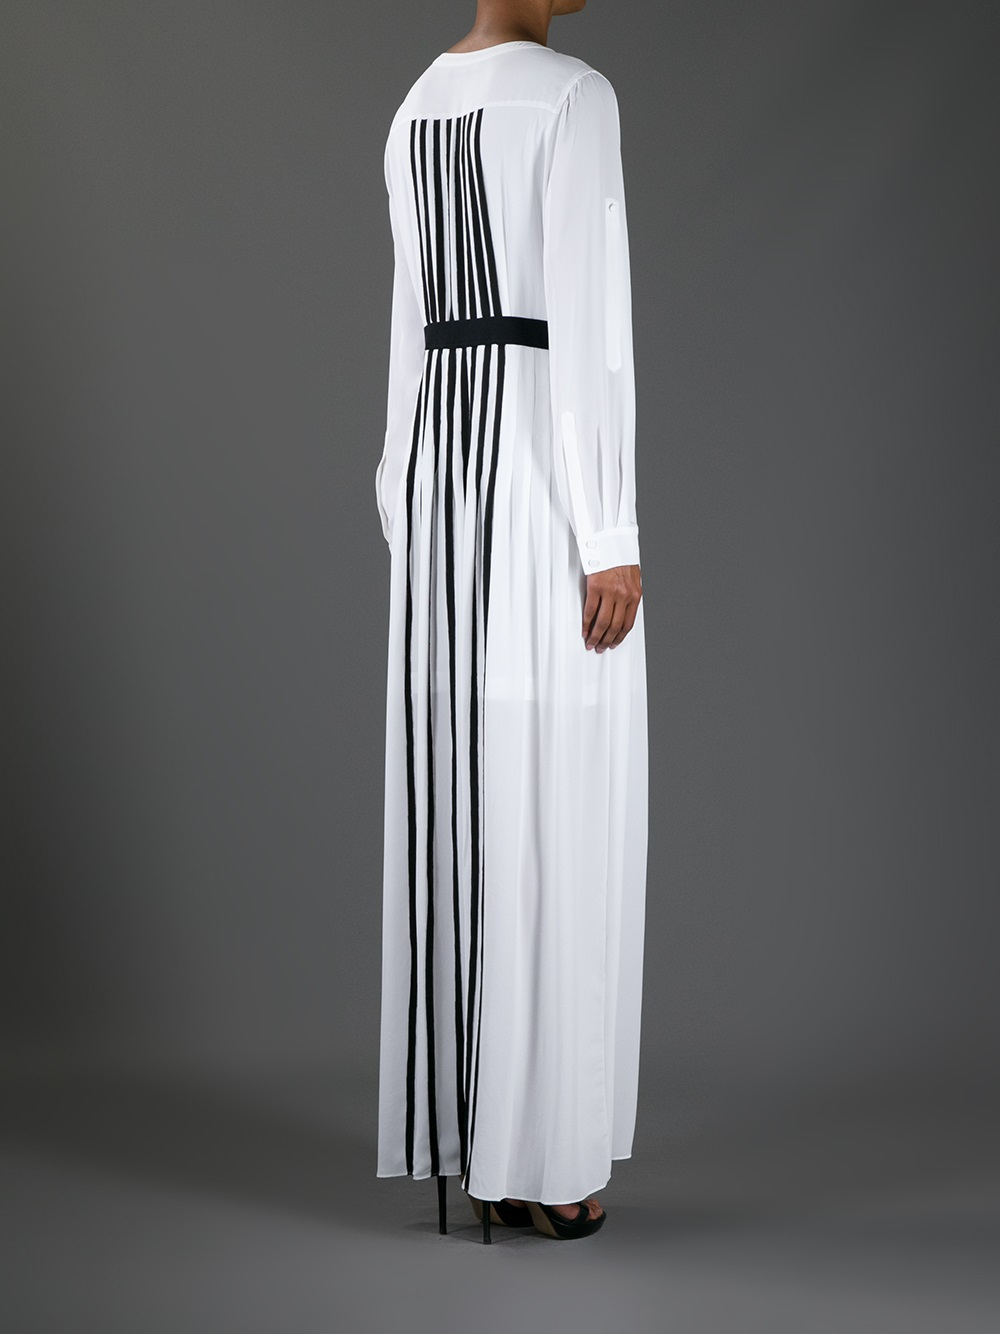 Lyst Bcbgmaxazria Striped Long Dress In White